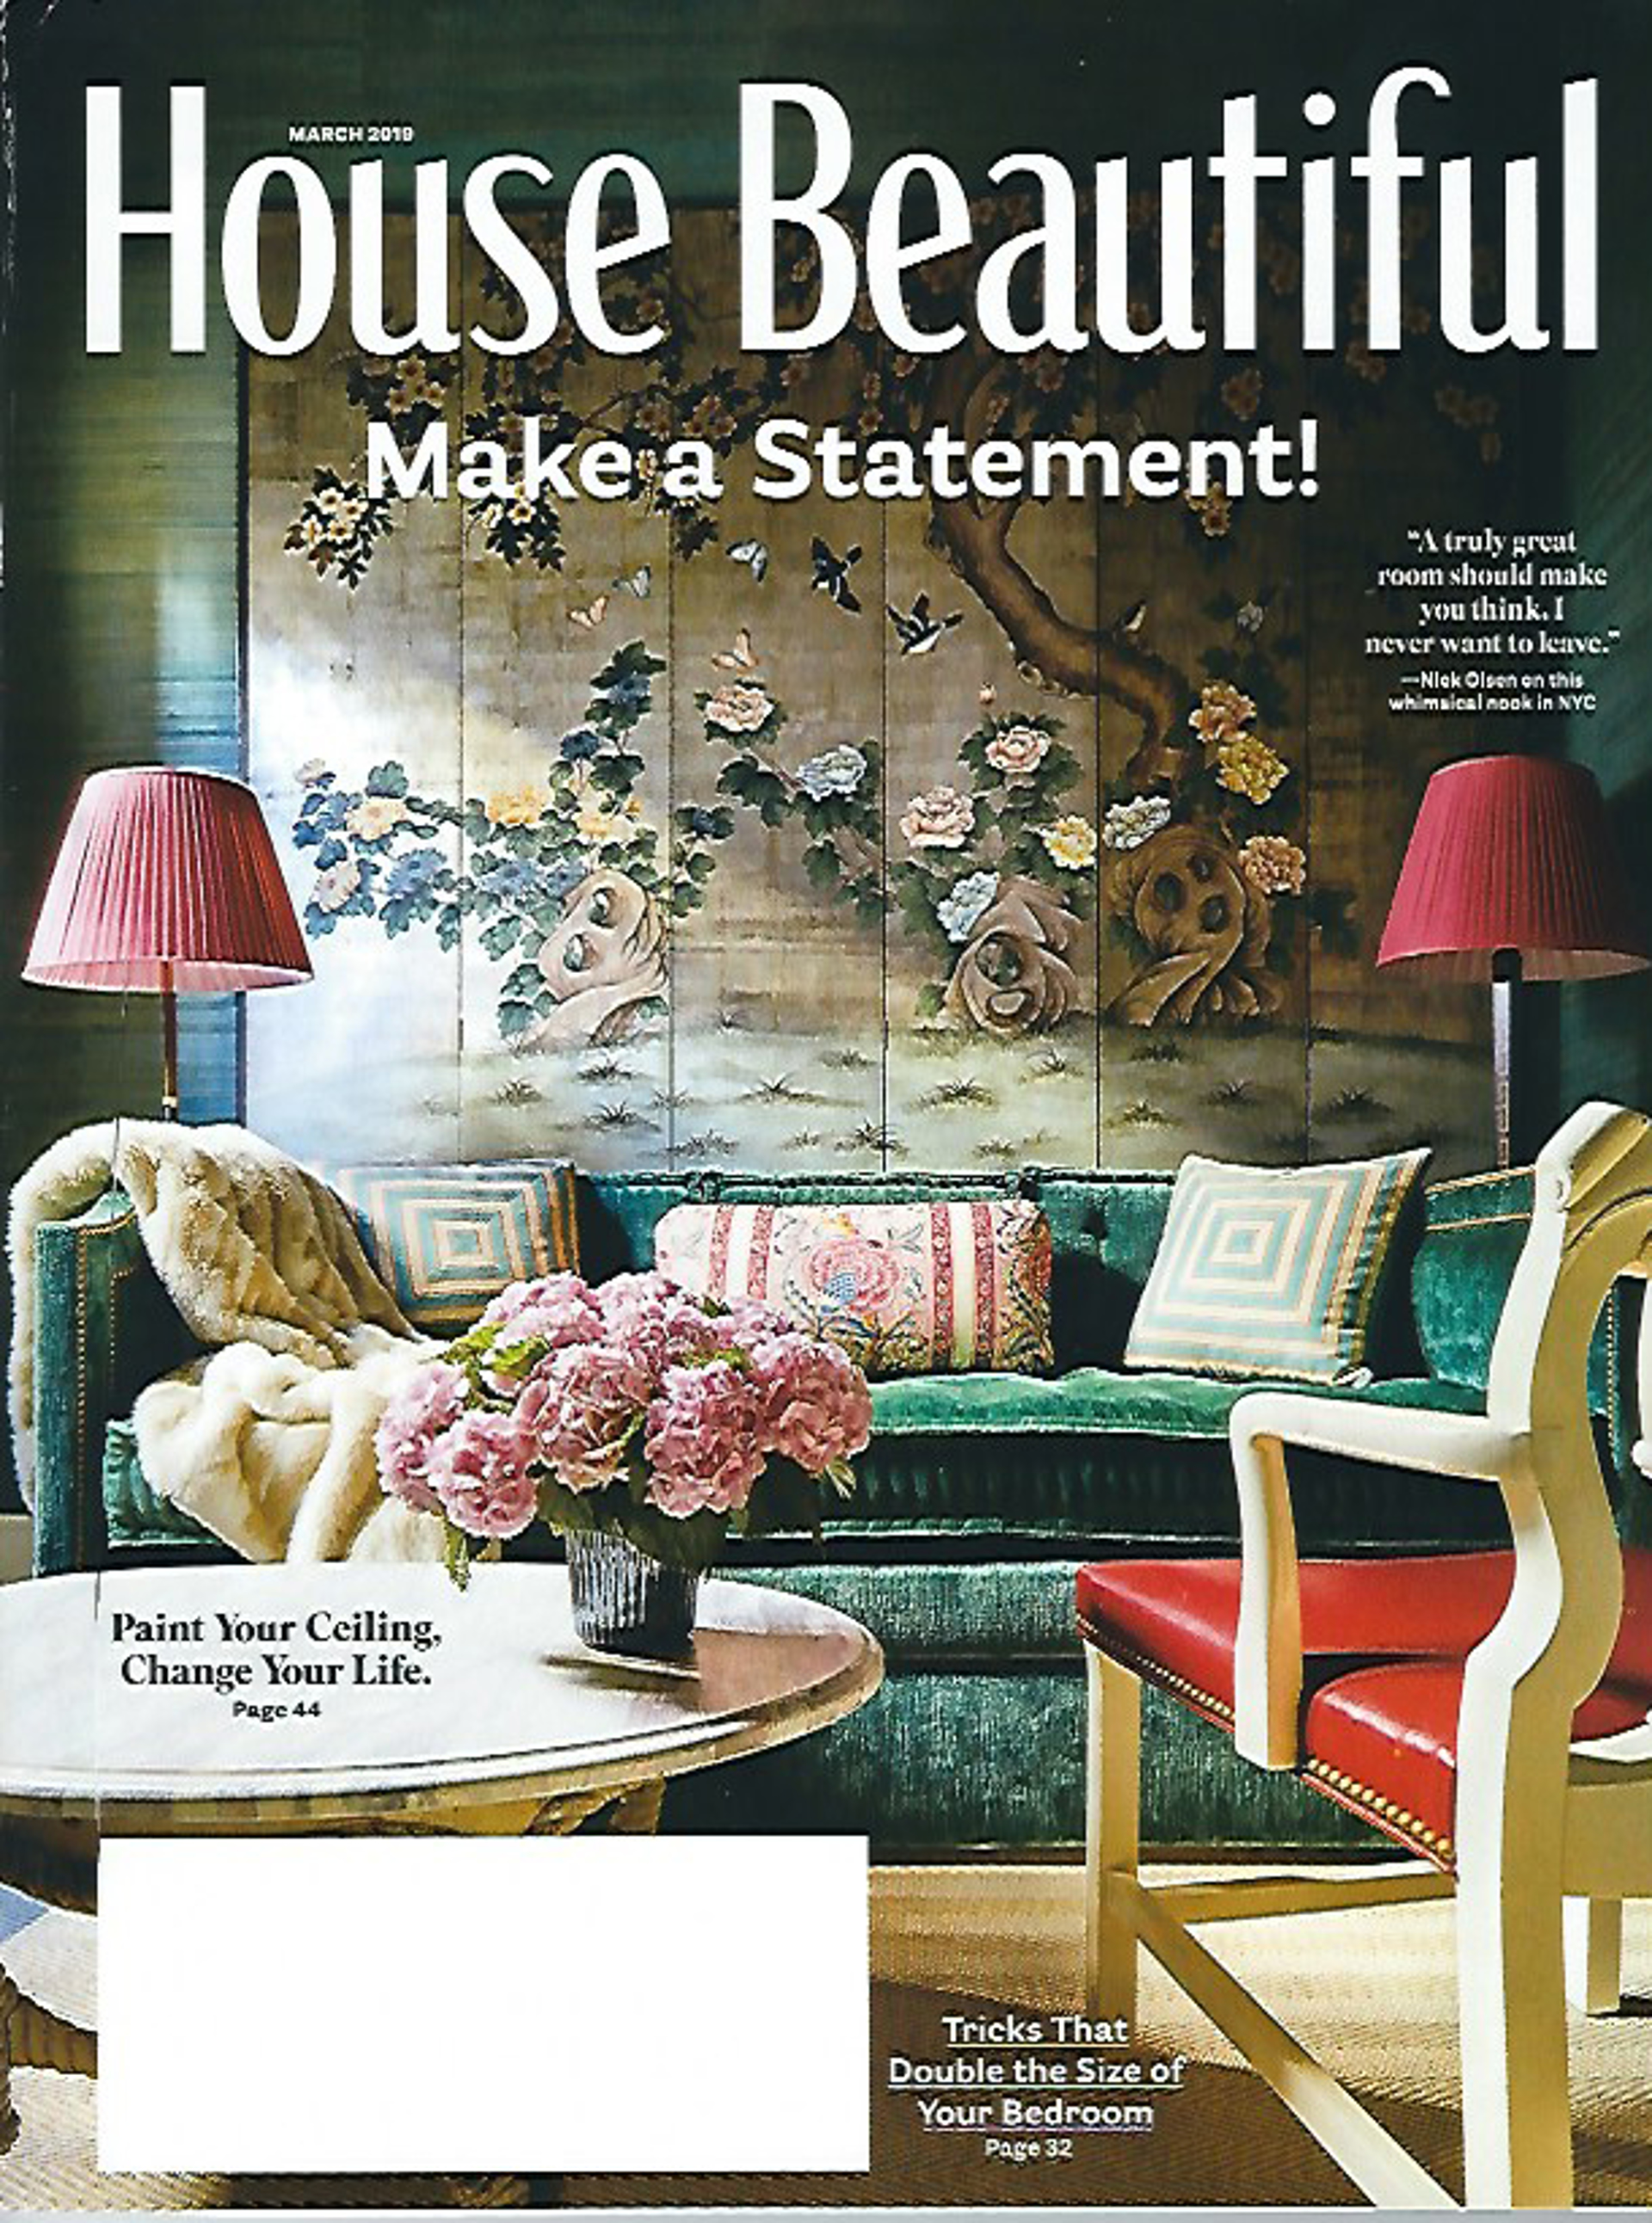 House Beautiful, March 2019 - Jacques Jarrige